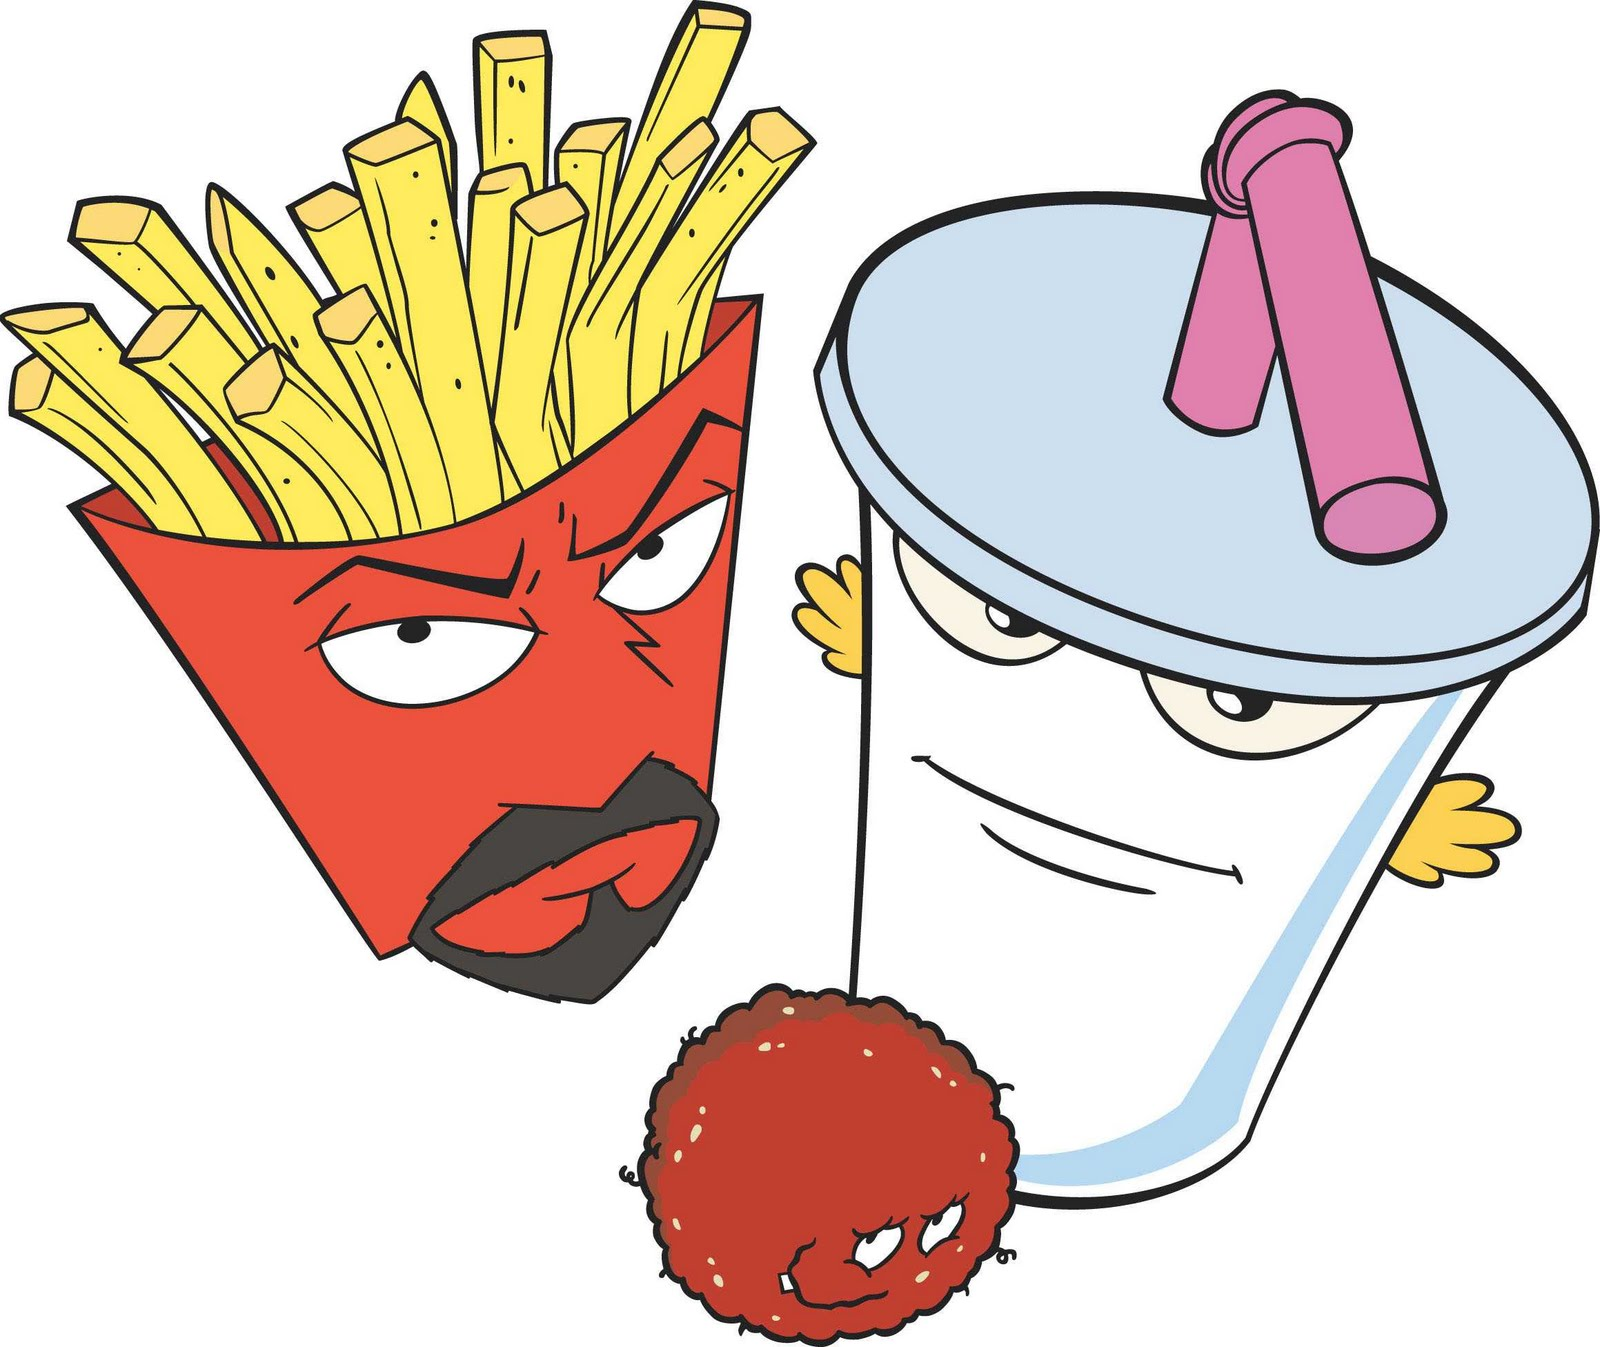 Aqua teen hunger force chapeau